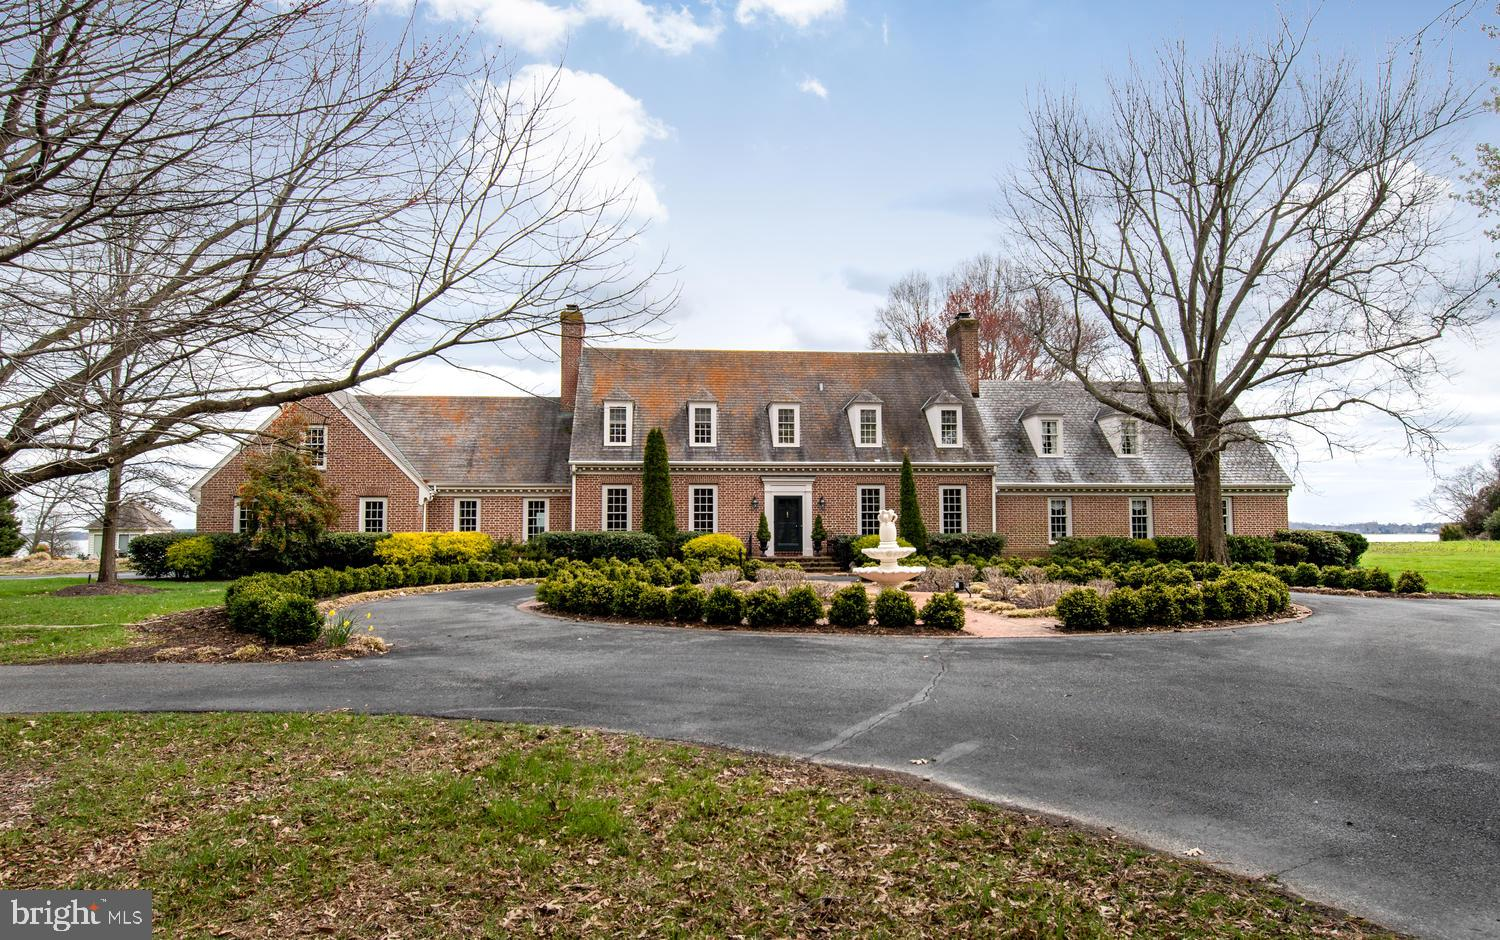 1369 CHANCELLOR POINT ROAD, TRAPPE, MD 21673